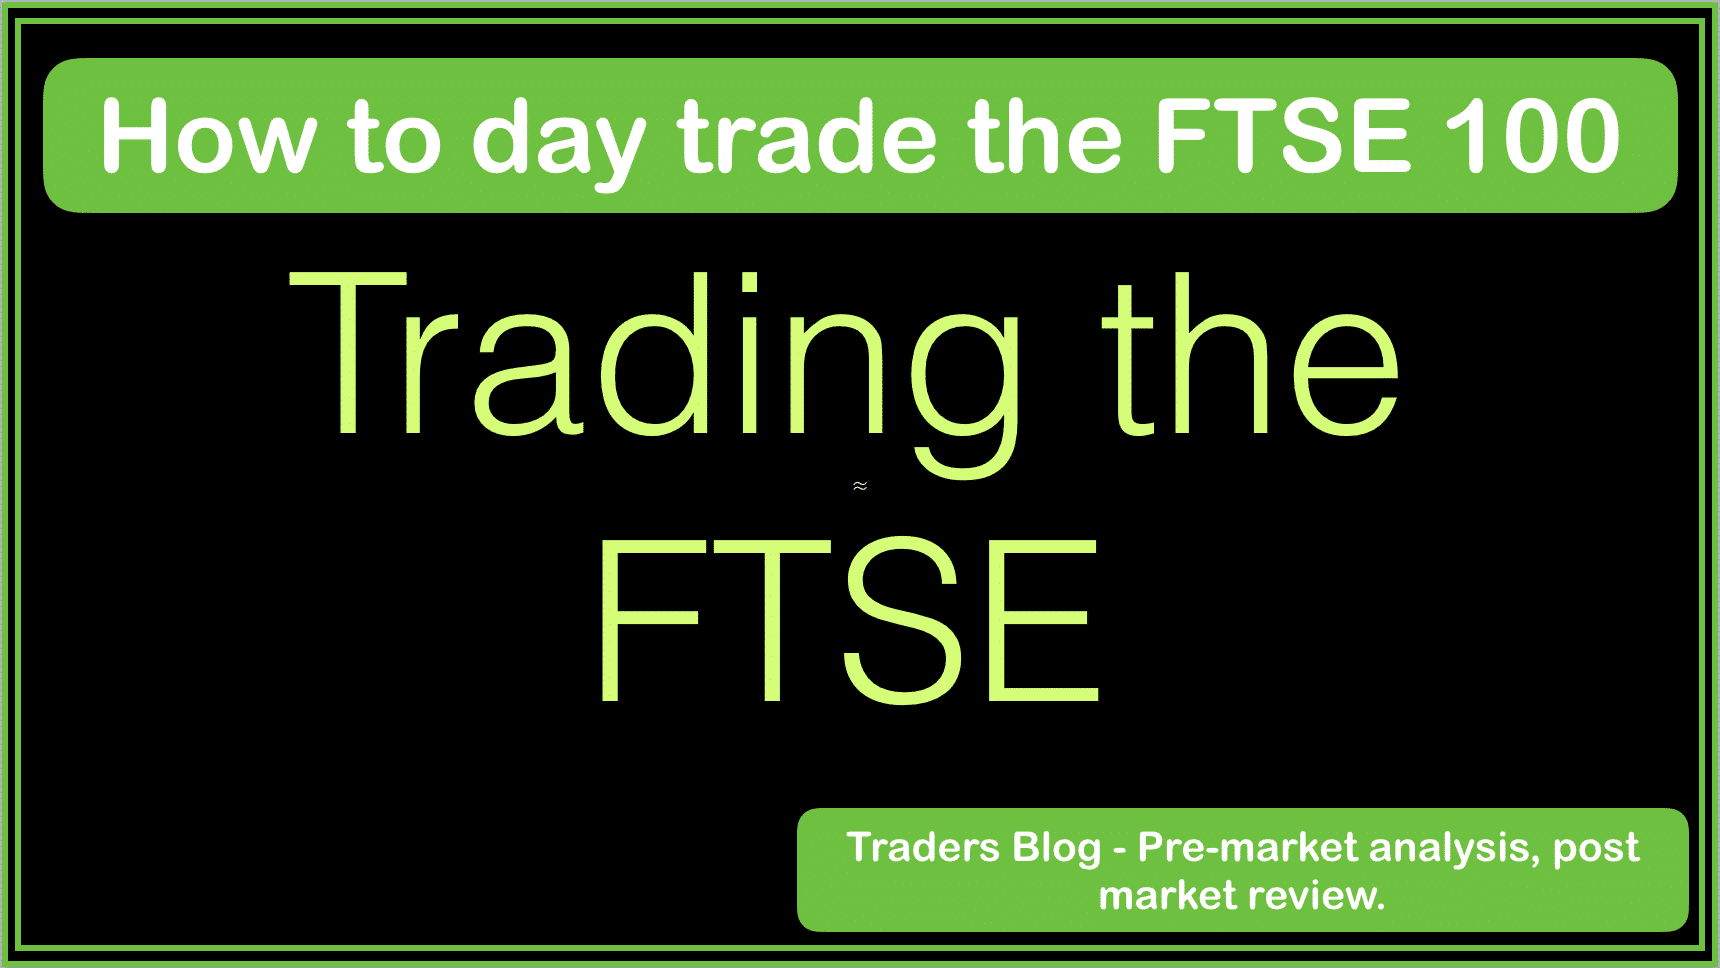 How to day trade the FTSE 100